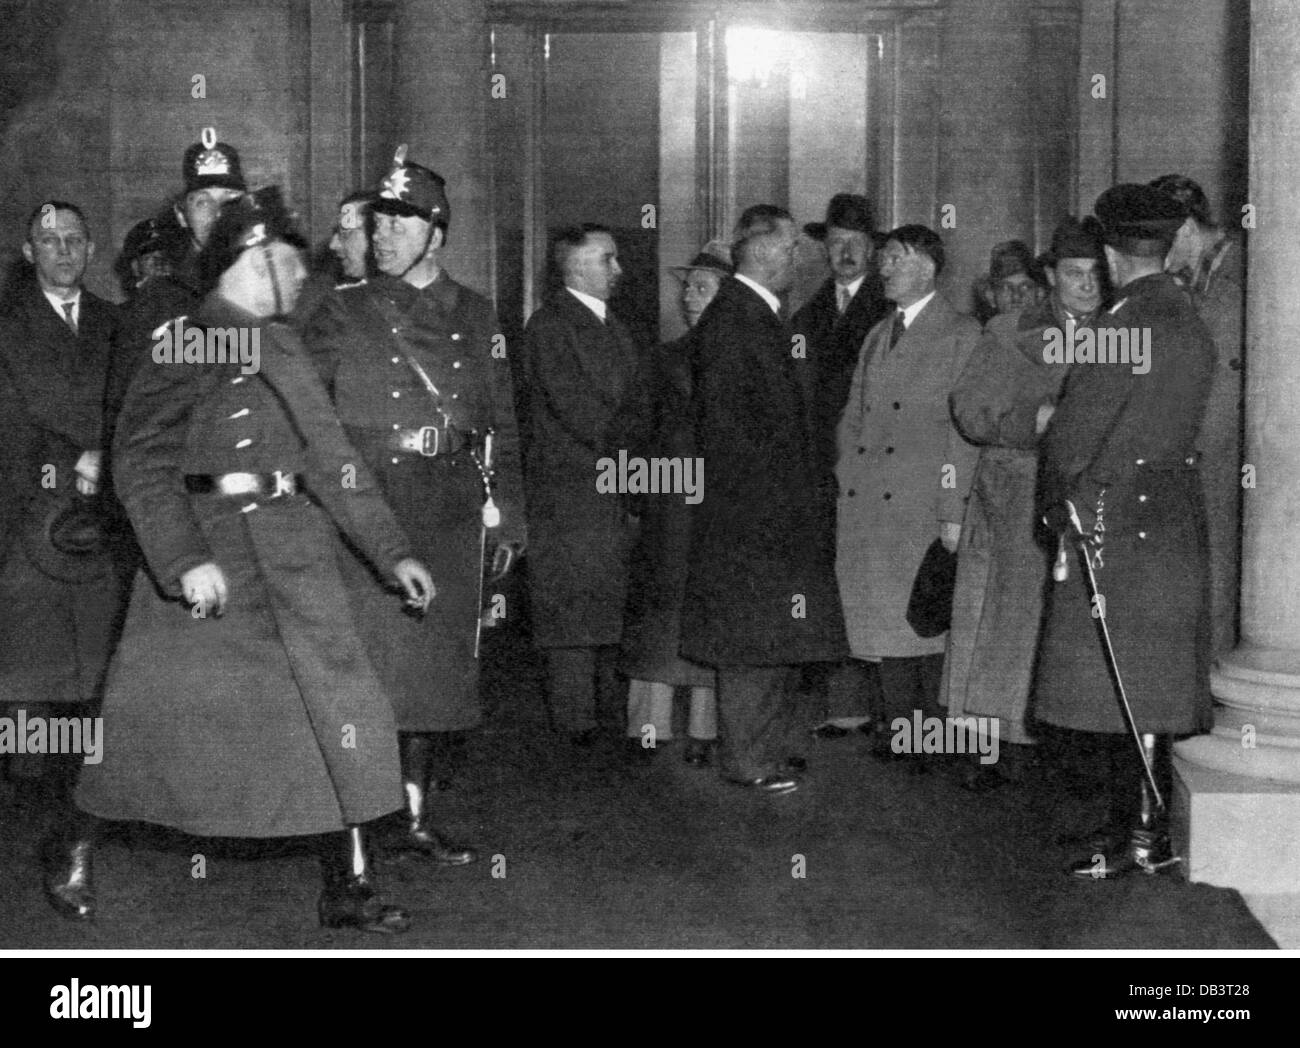 Reichstag Fire, Berlin, 27.2.1933, Chancellor of the Reich Adolf Hitler, President of the Reichstag Hermann Goering - Stock Image